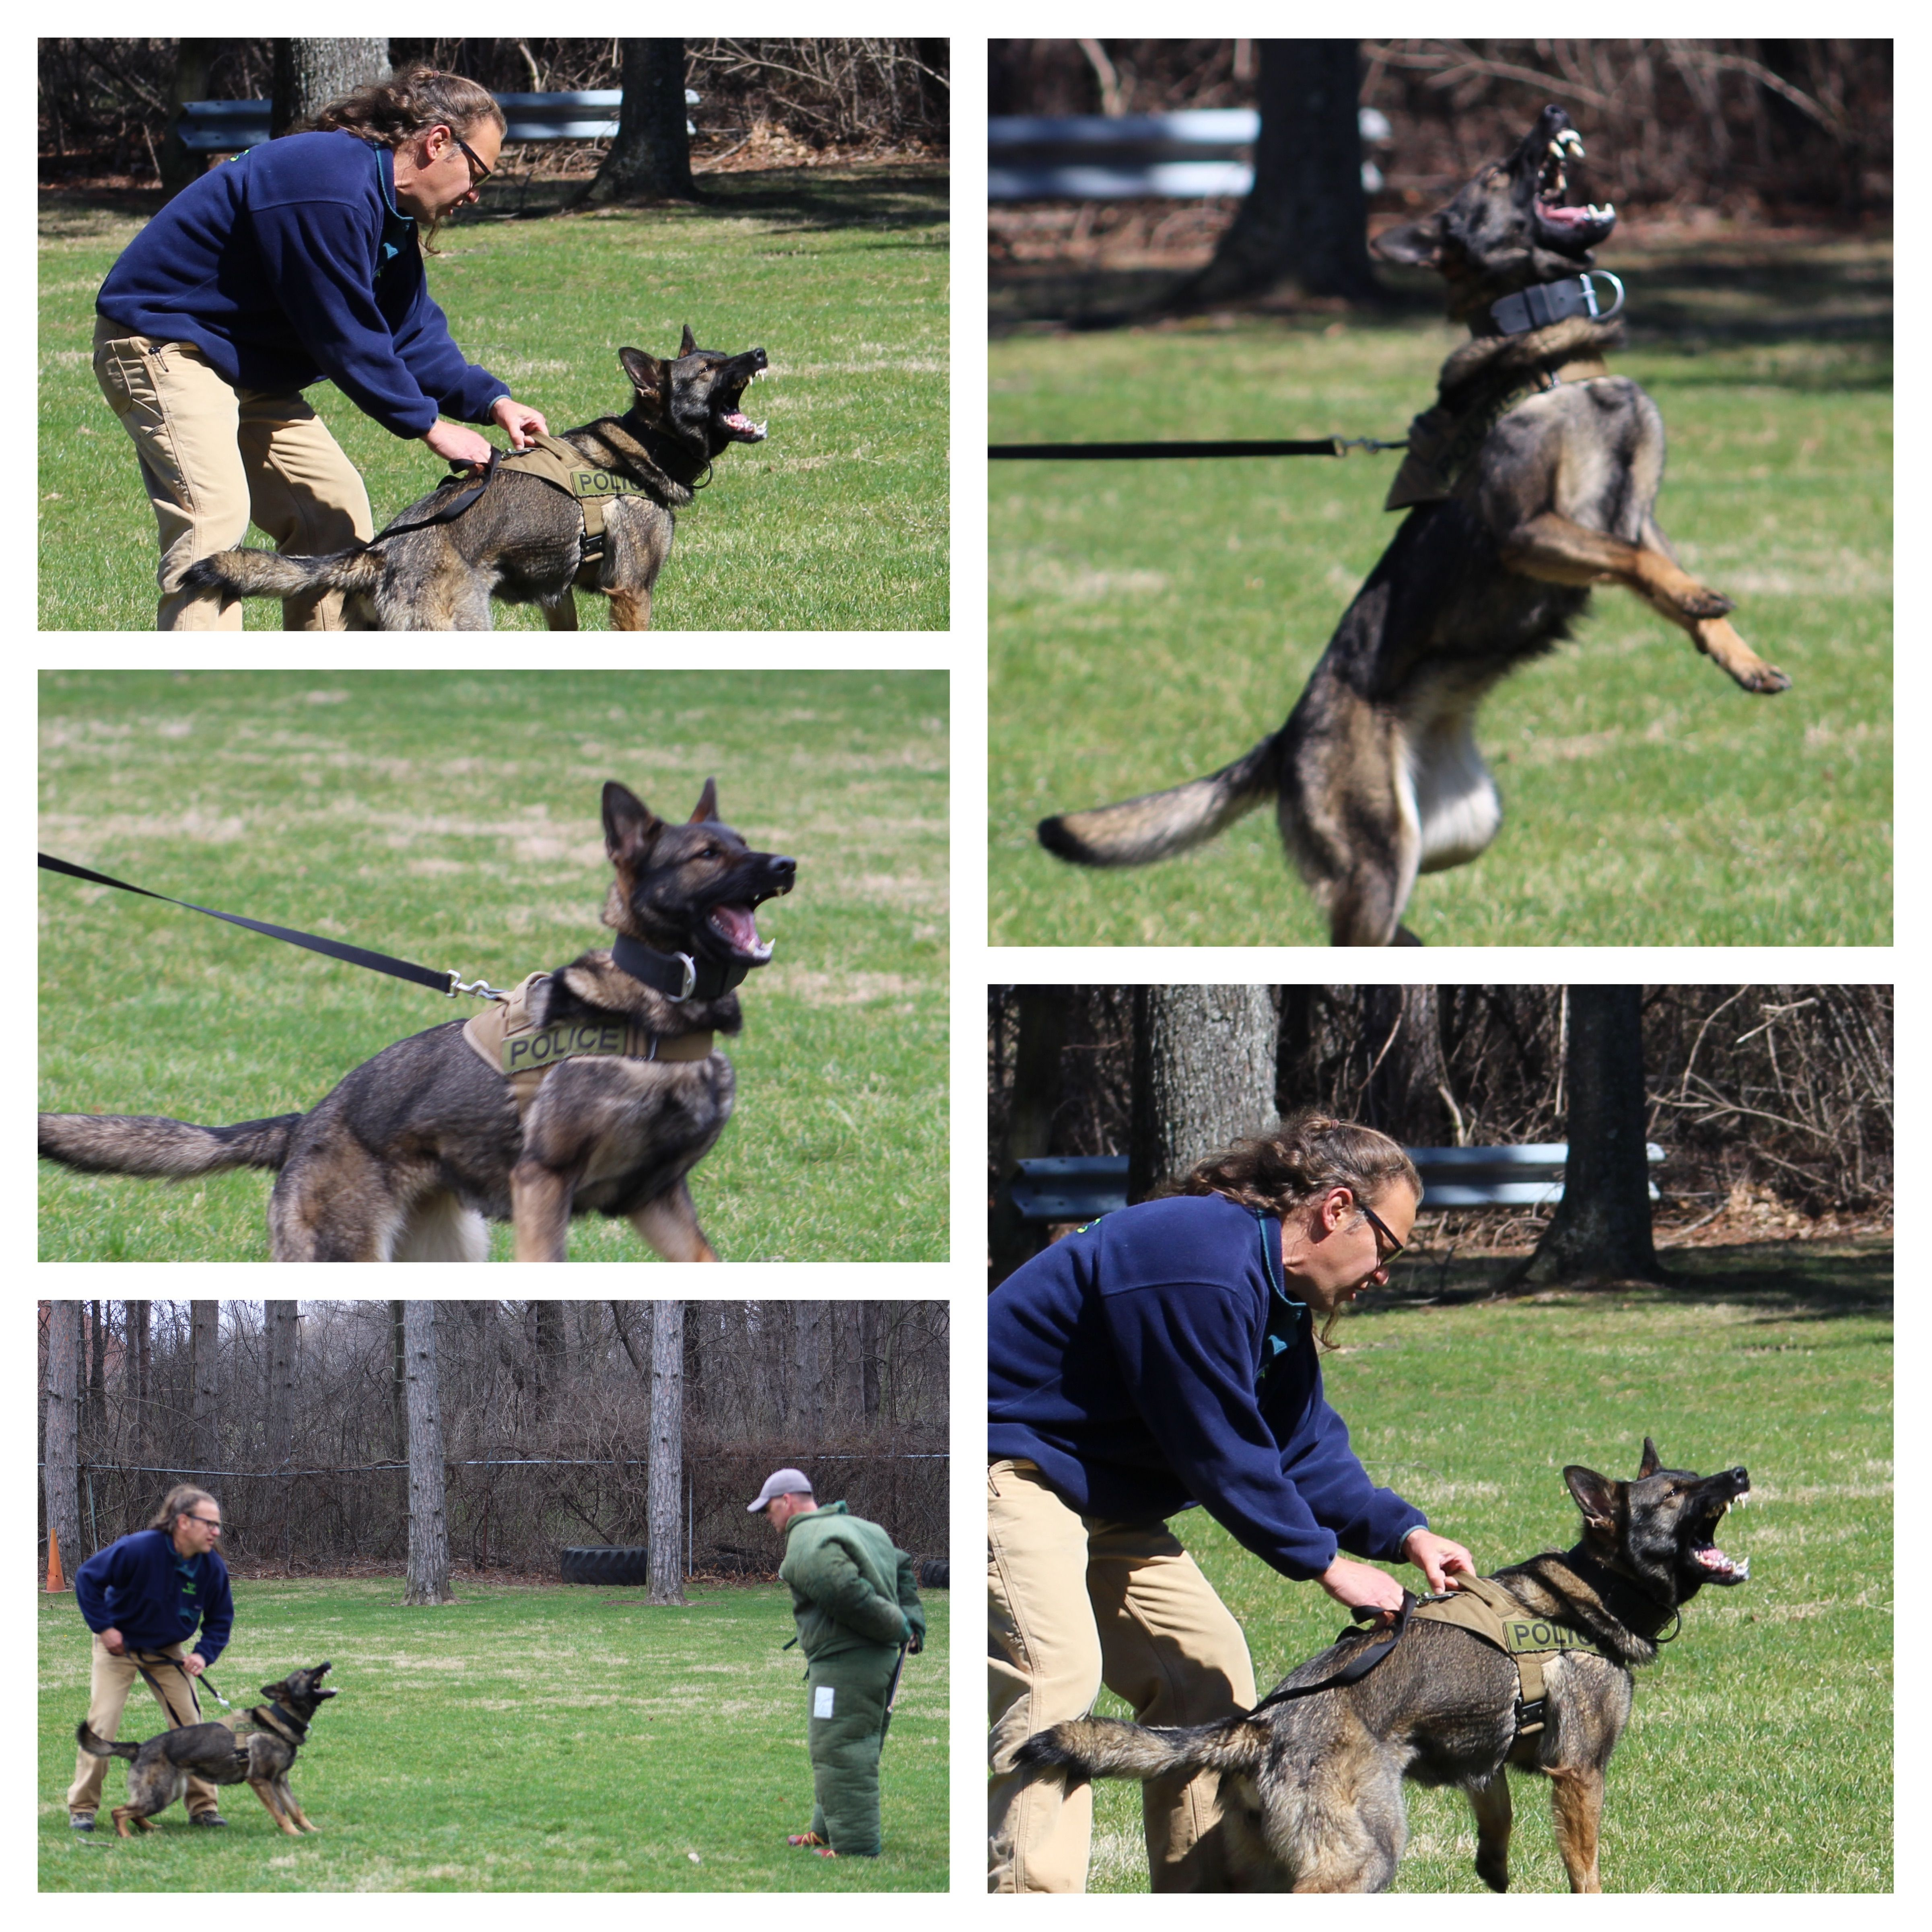 K9 Kyra Doing Some Bite Work Training She Is An Incredibly Social